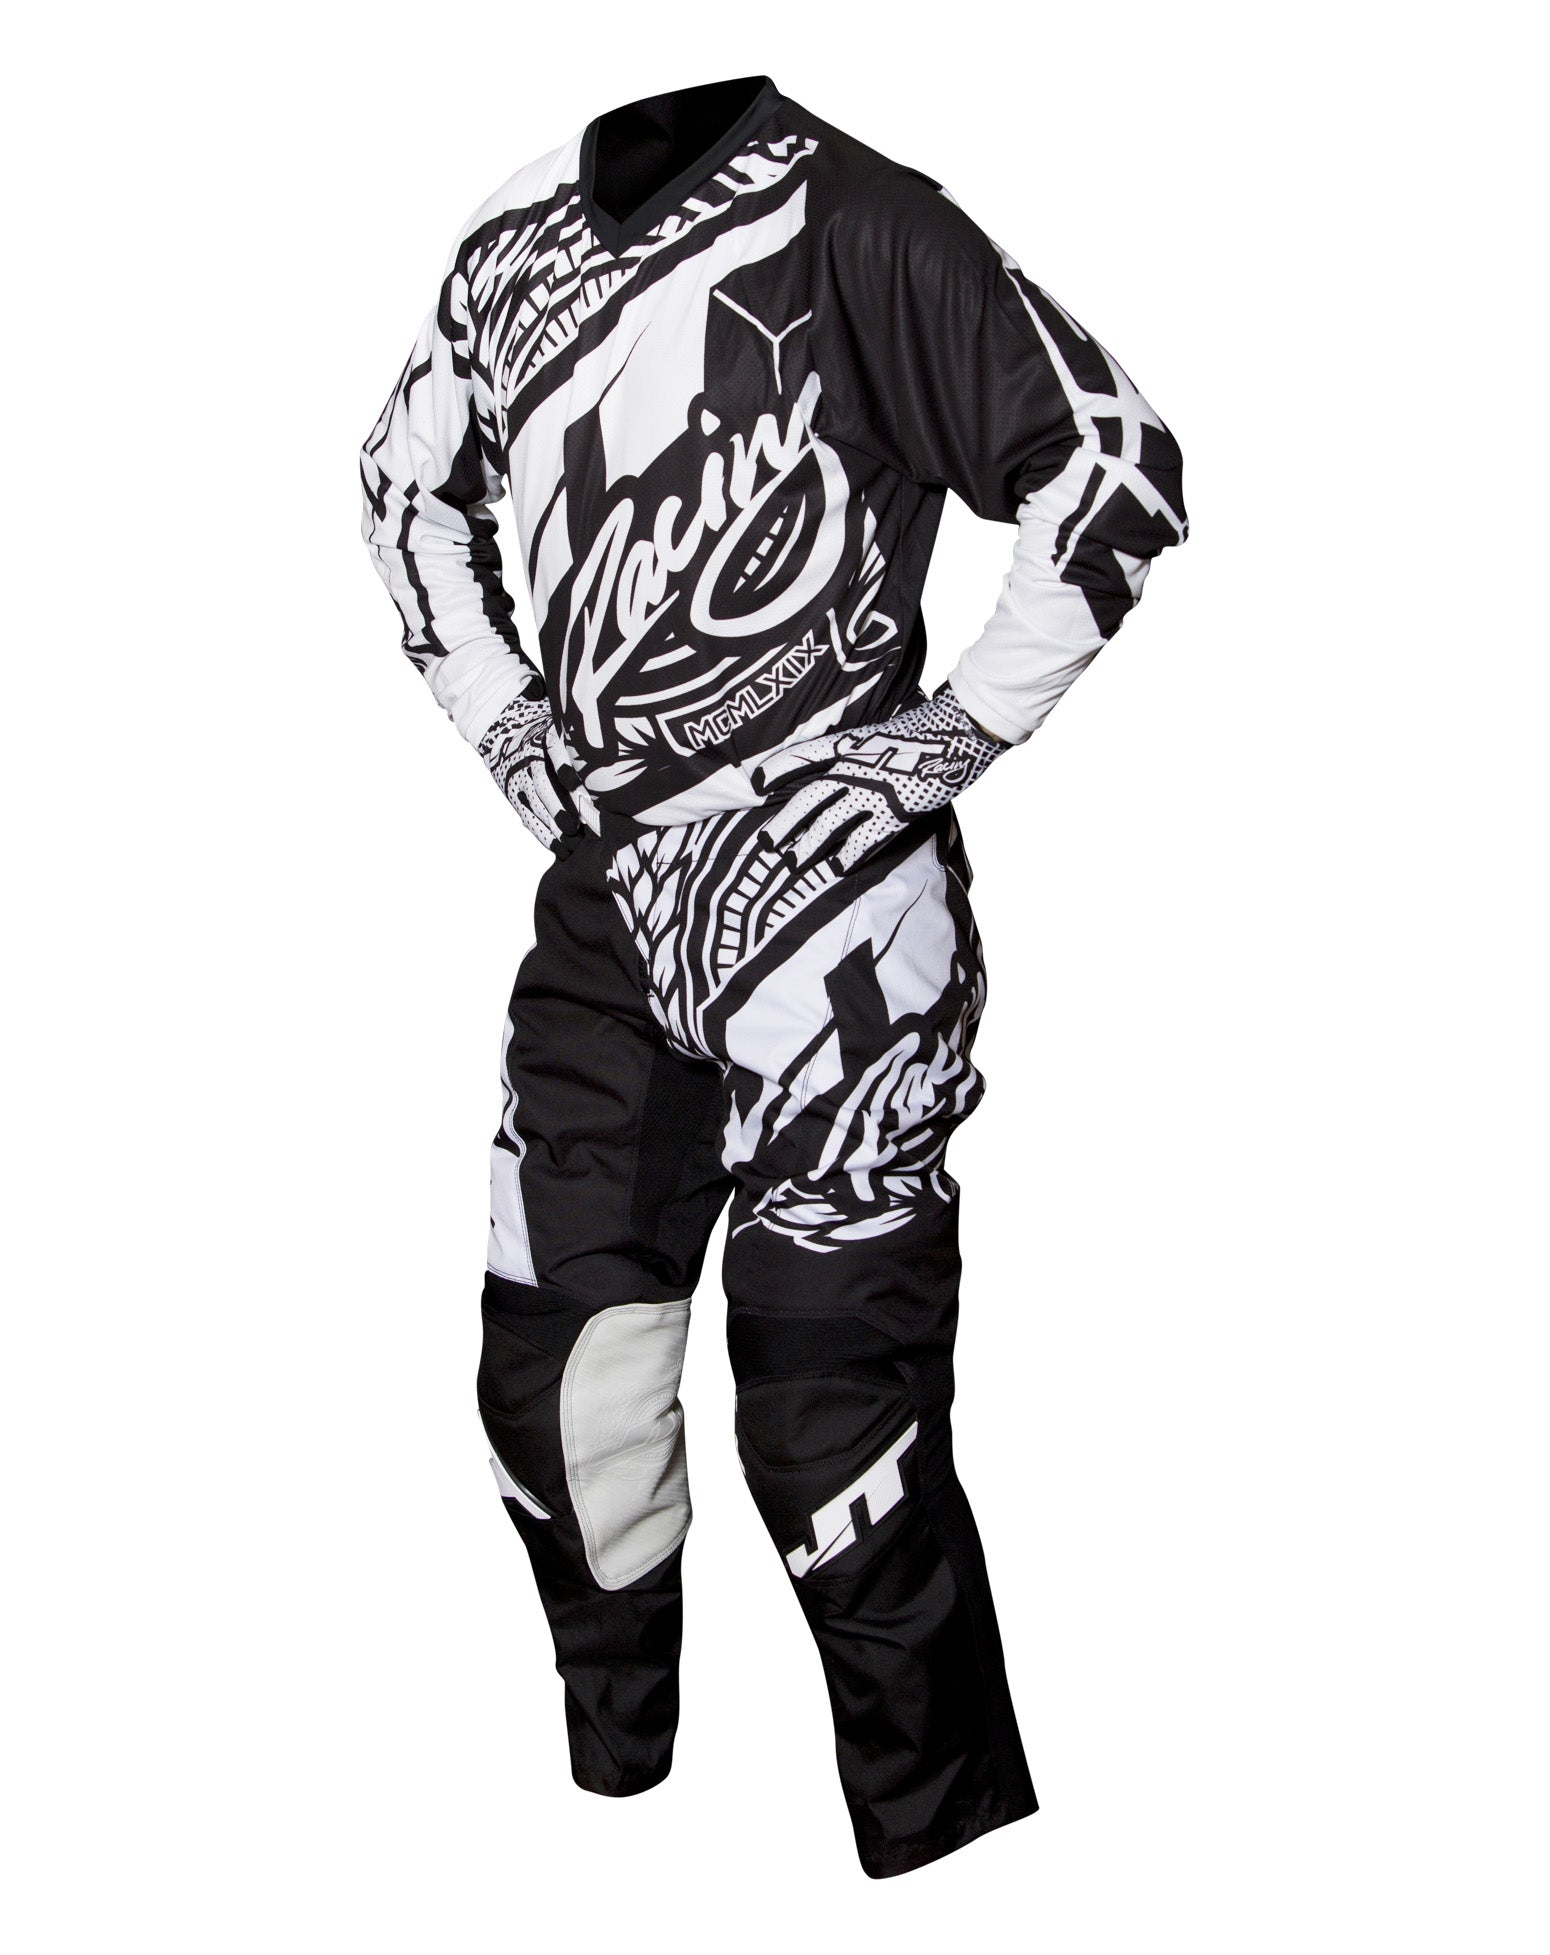 JT RACING USA Flex-Victory Pants, Black/White